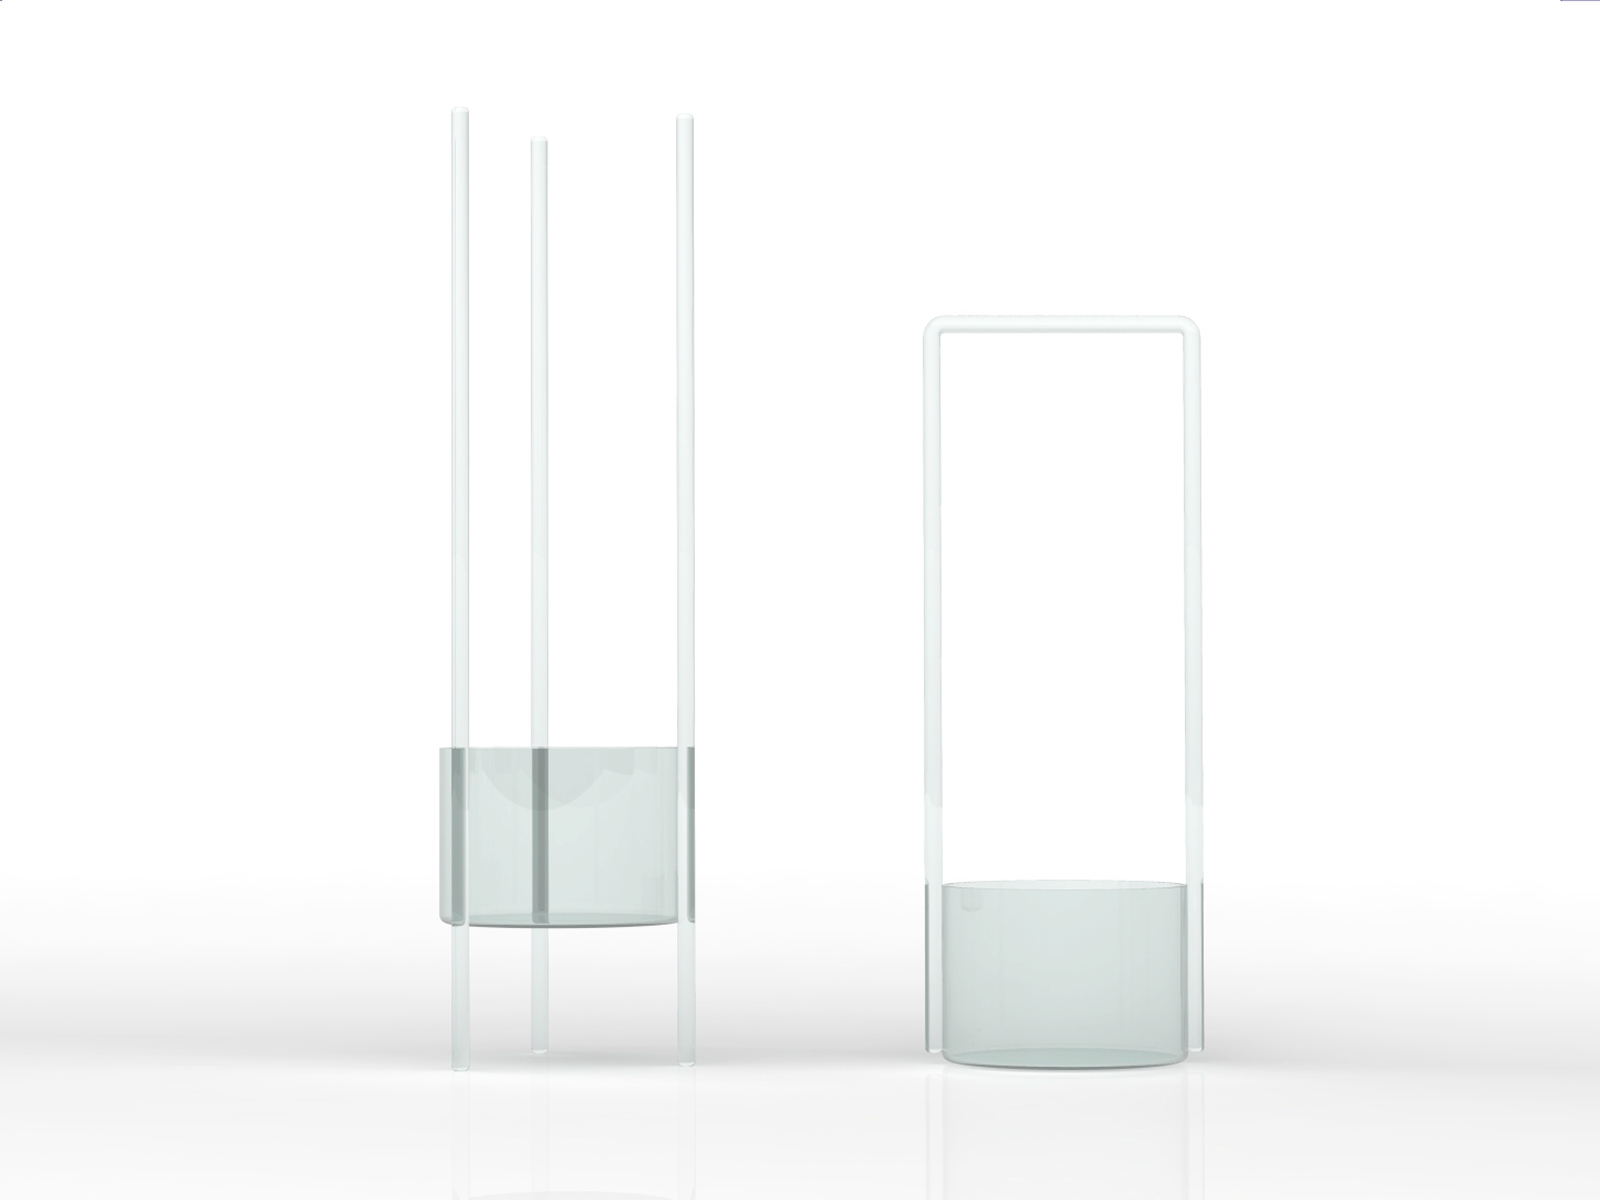 Design concept by Masamichi Udagawa for GlassLab in Corning, June 2012